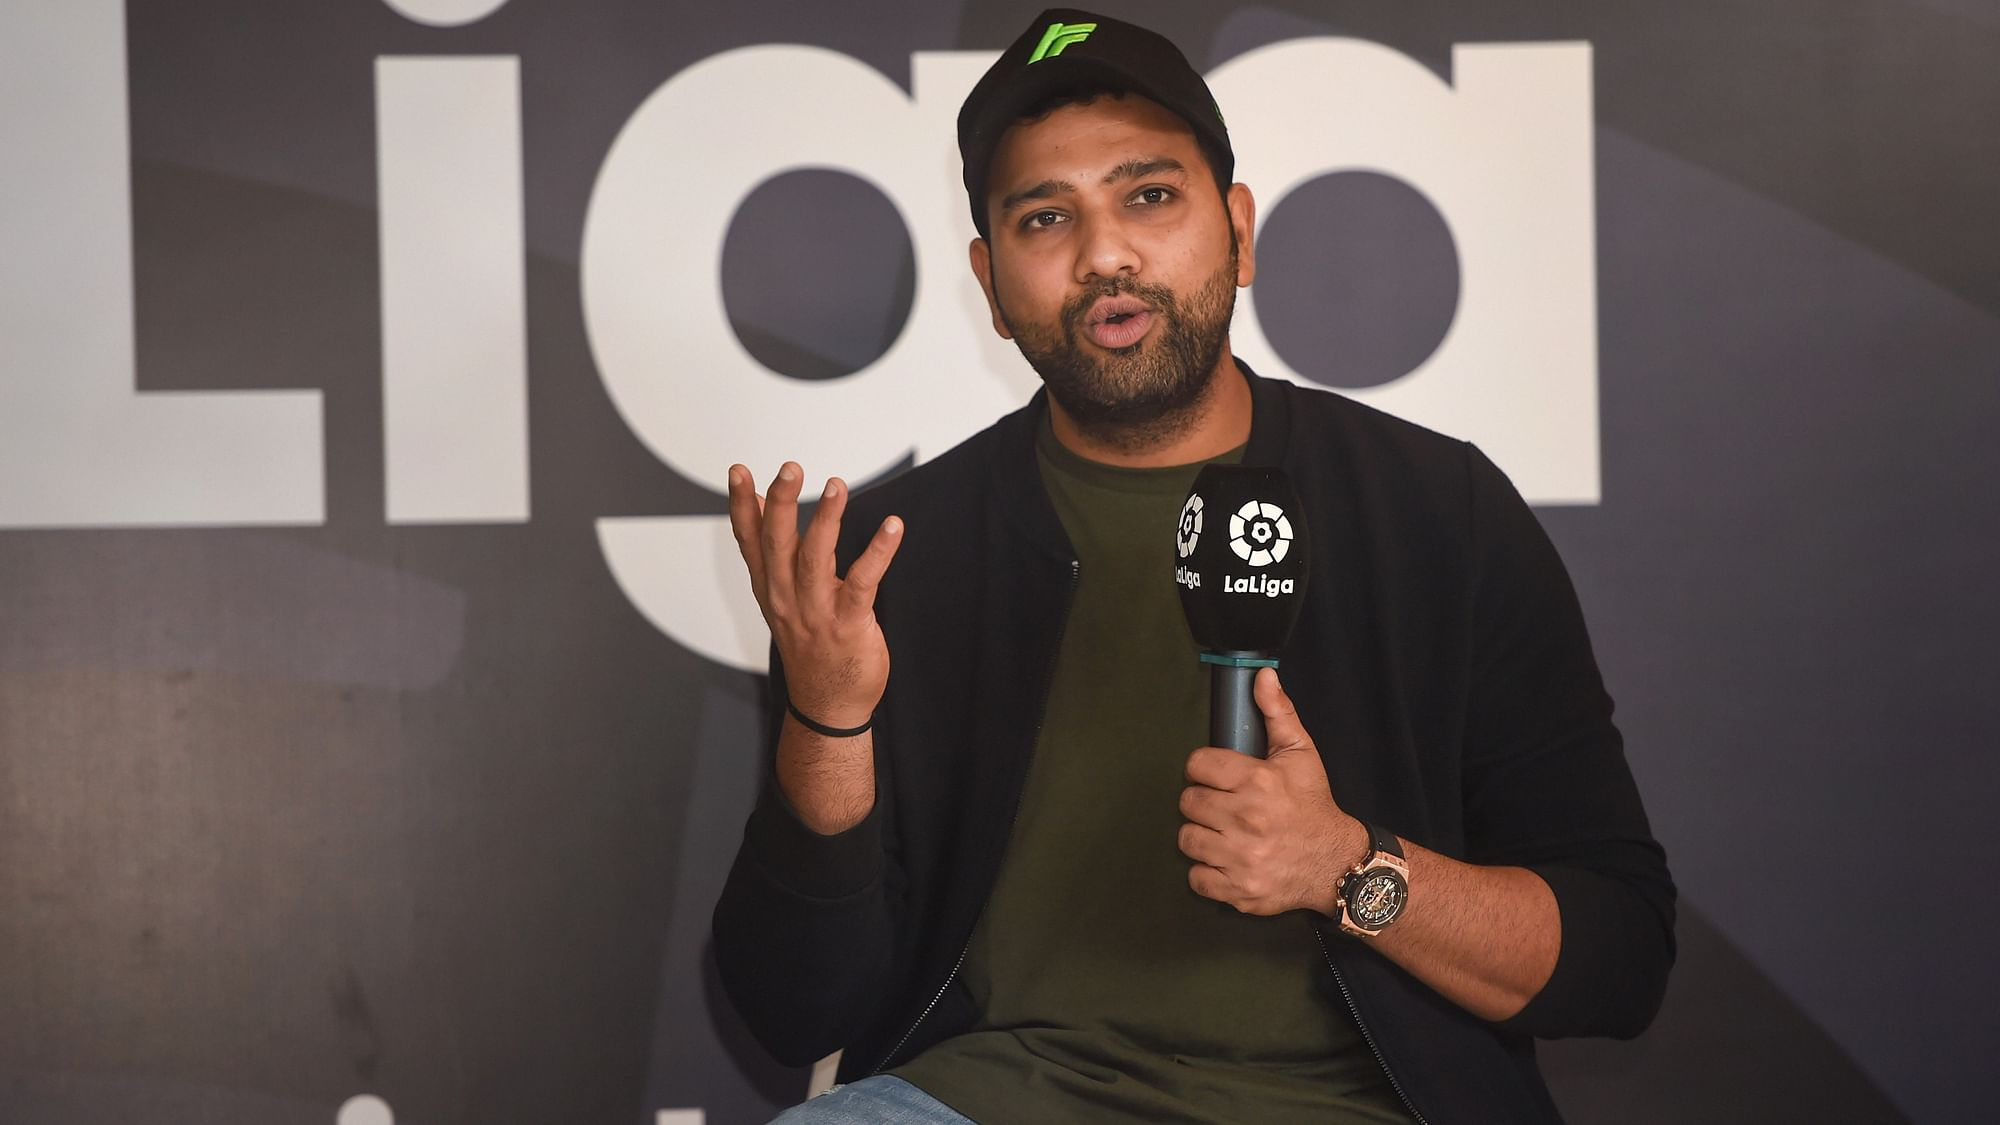 Like IPL, ISL Also Brings the Best of Indian Talent: Rohit Sharma